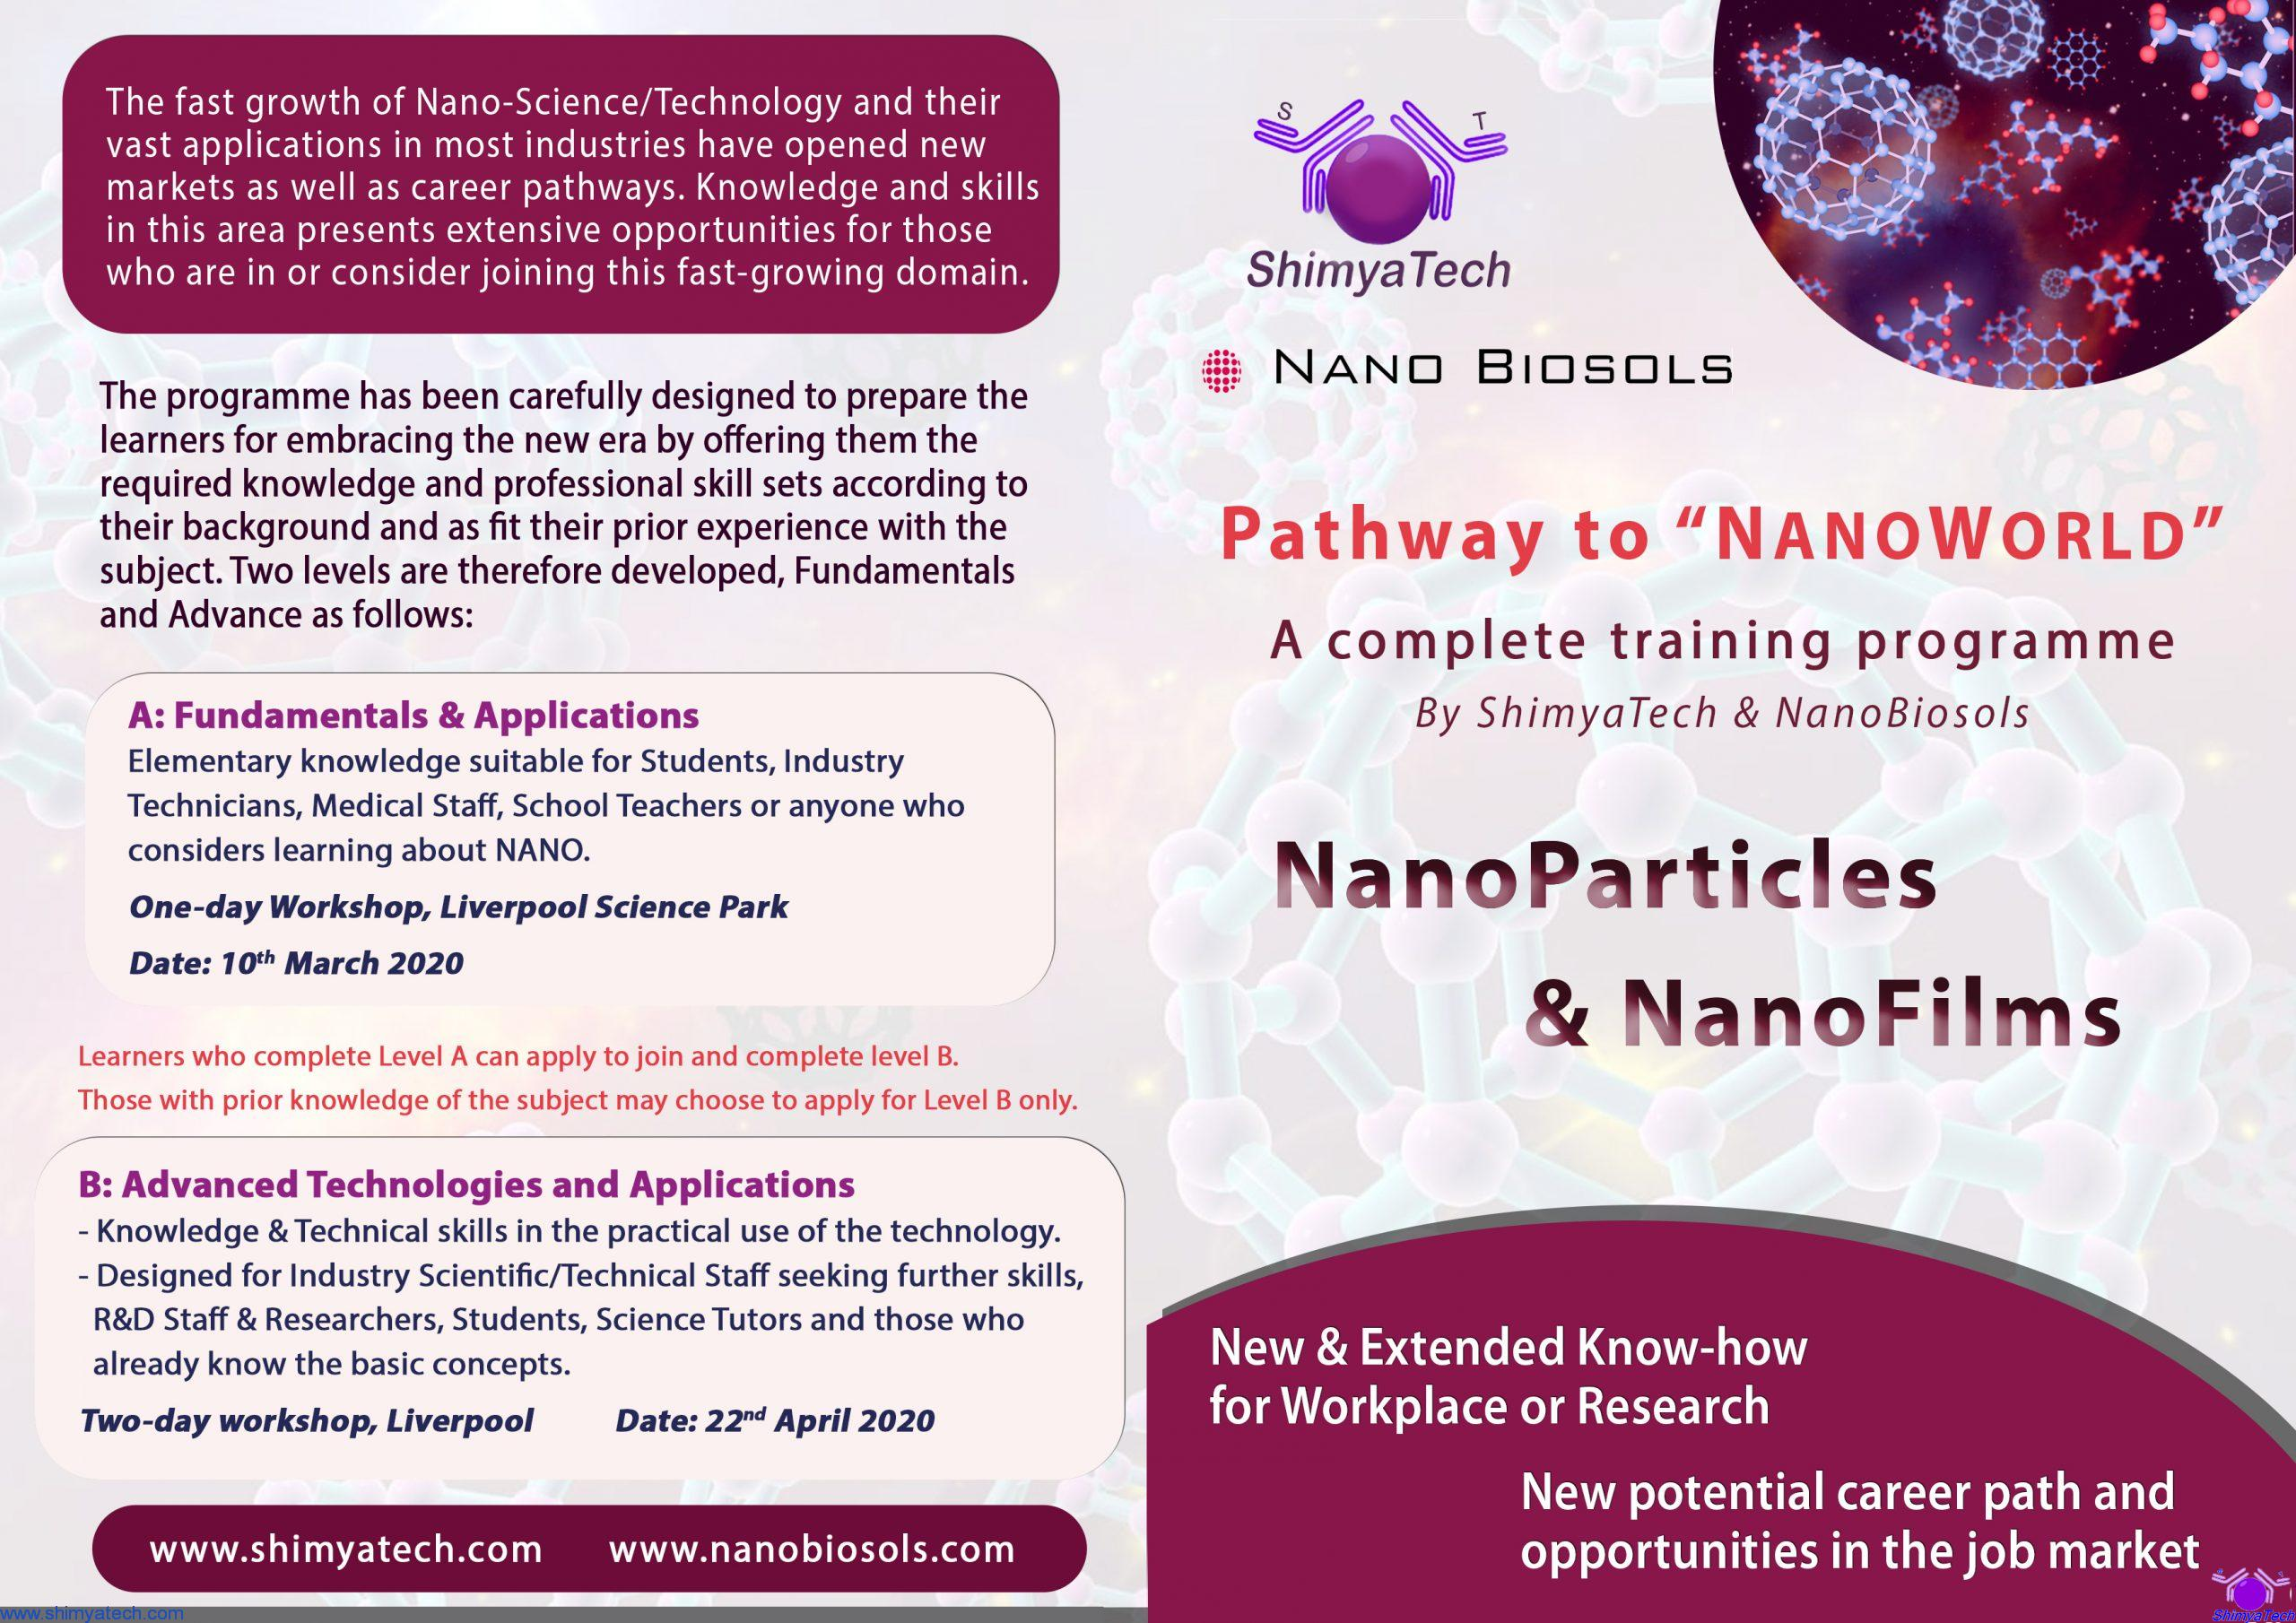 Welcome to NanoWorld - Training Programme - Leaflet1